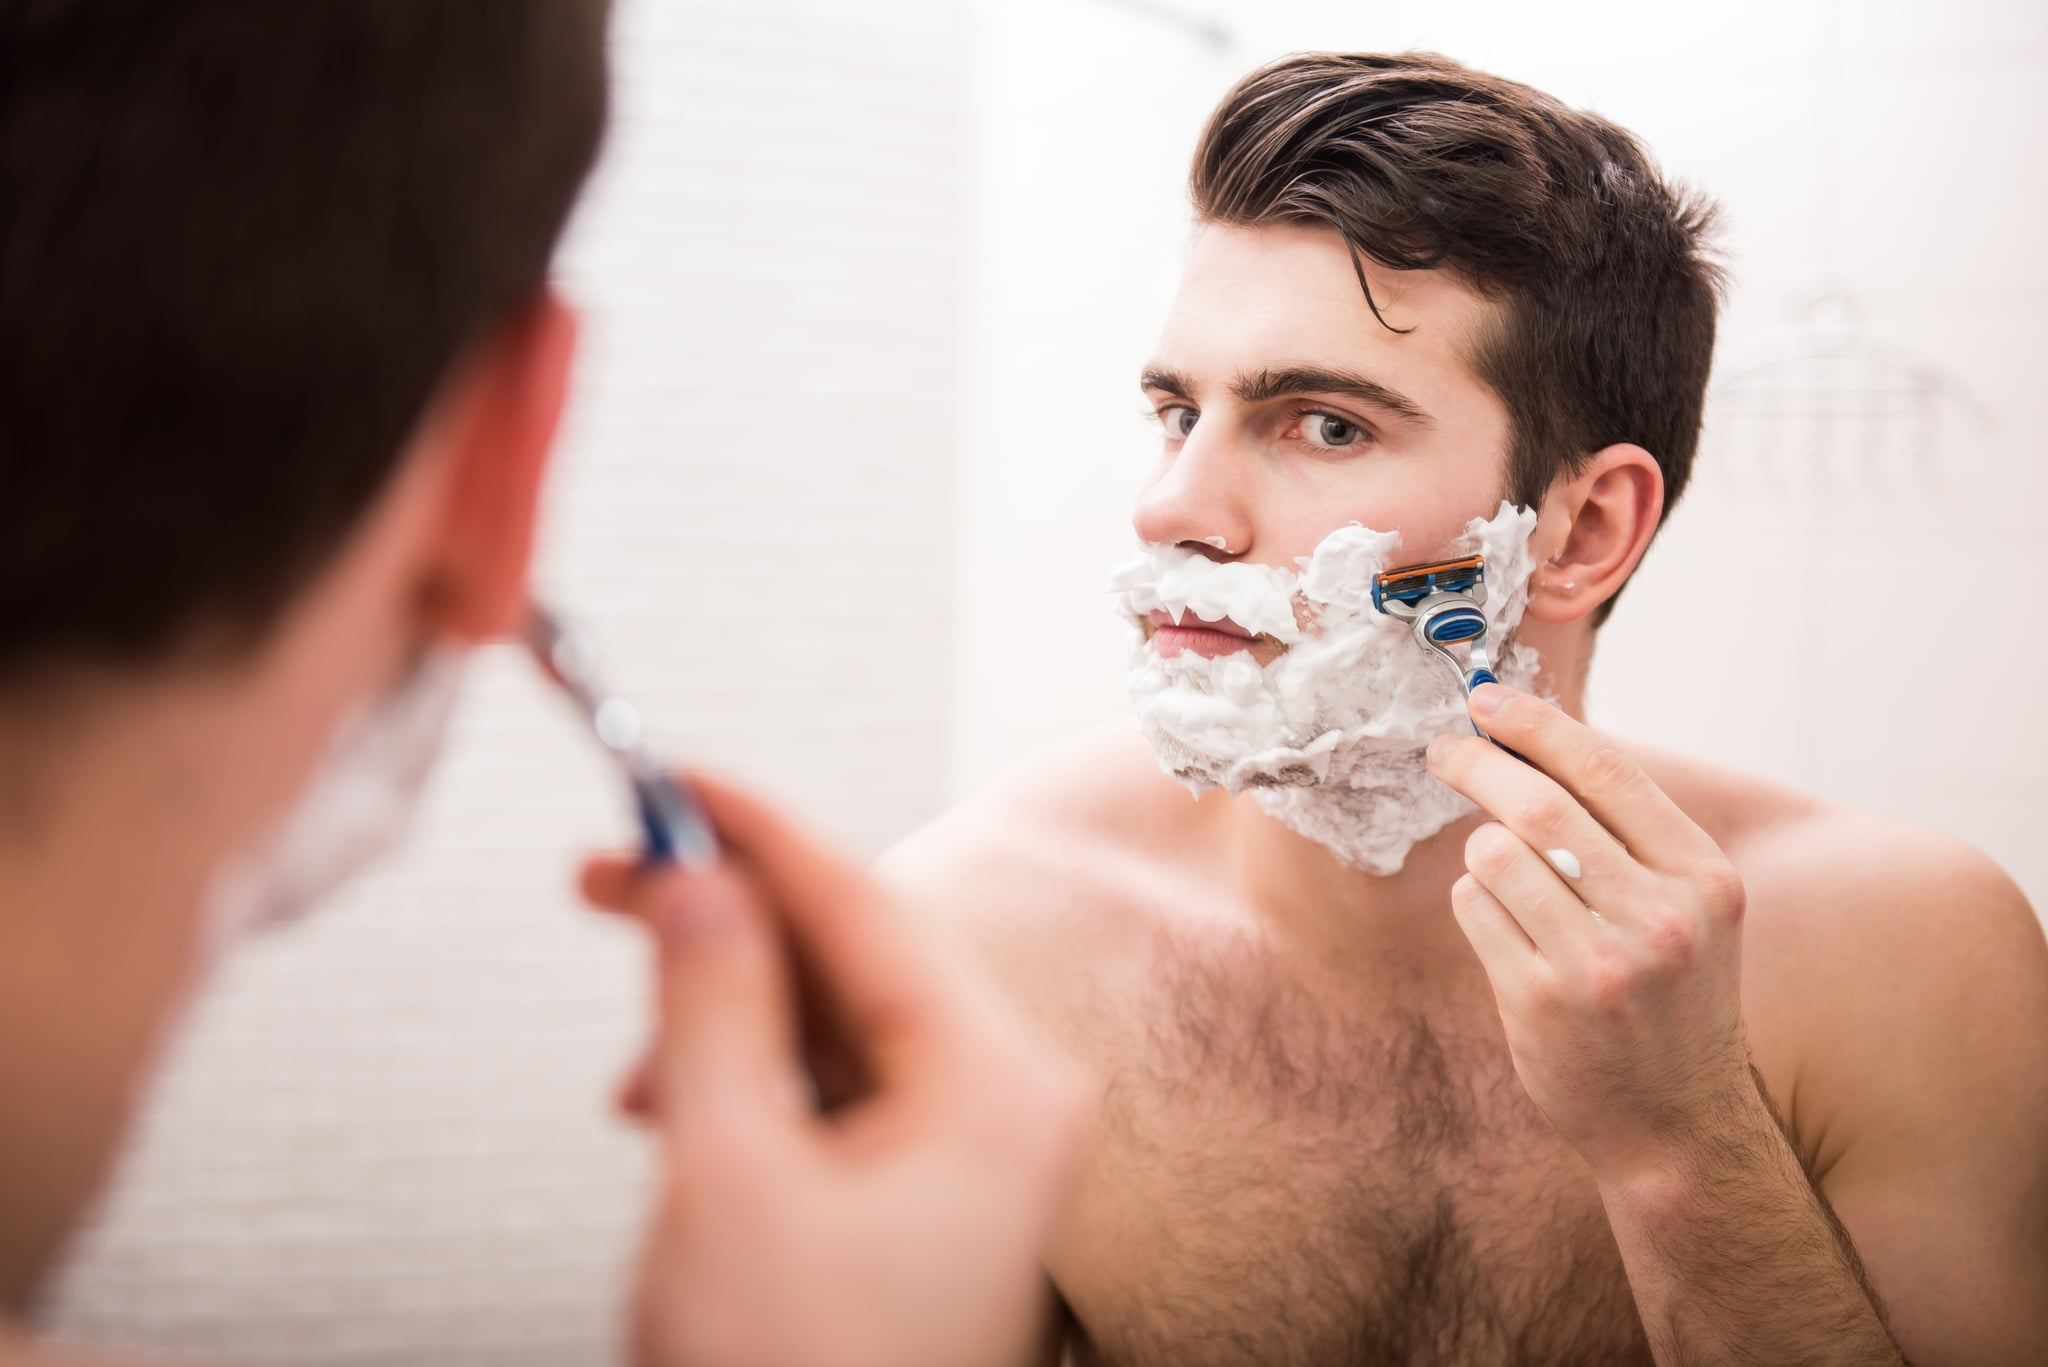 Razor Ps Pseudofolliculitis Barbae Irritating On The Skin That Ear After You Shave